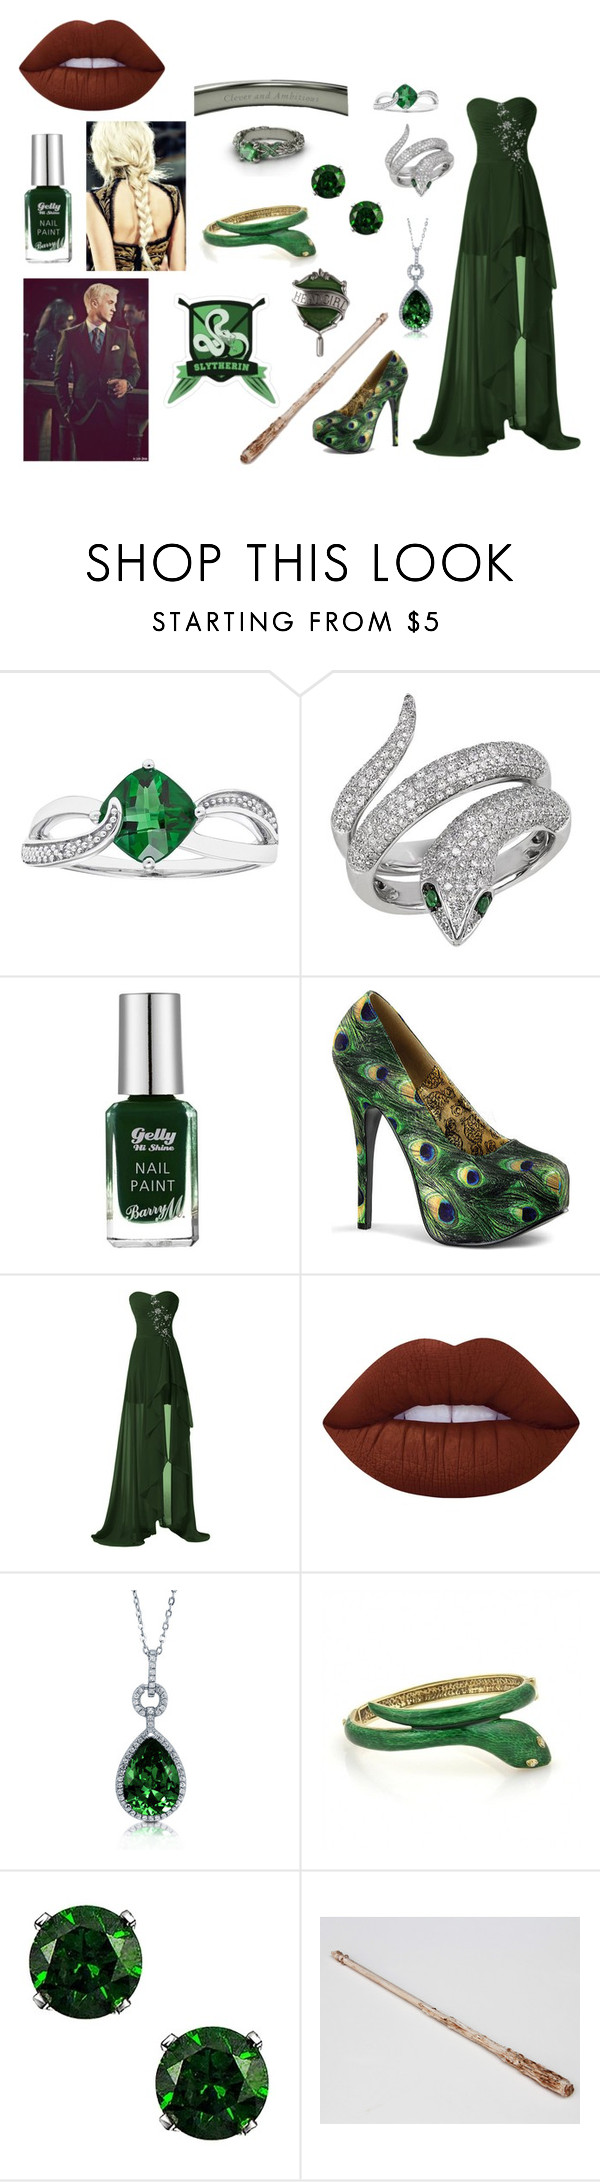 Yule Ball - Slytherin by haleyd13 on Polyvore featuring Bordello, Effy Jewelry, BERRICLE, Lime Crime and Barry M